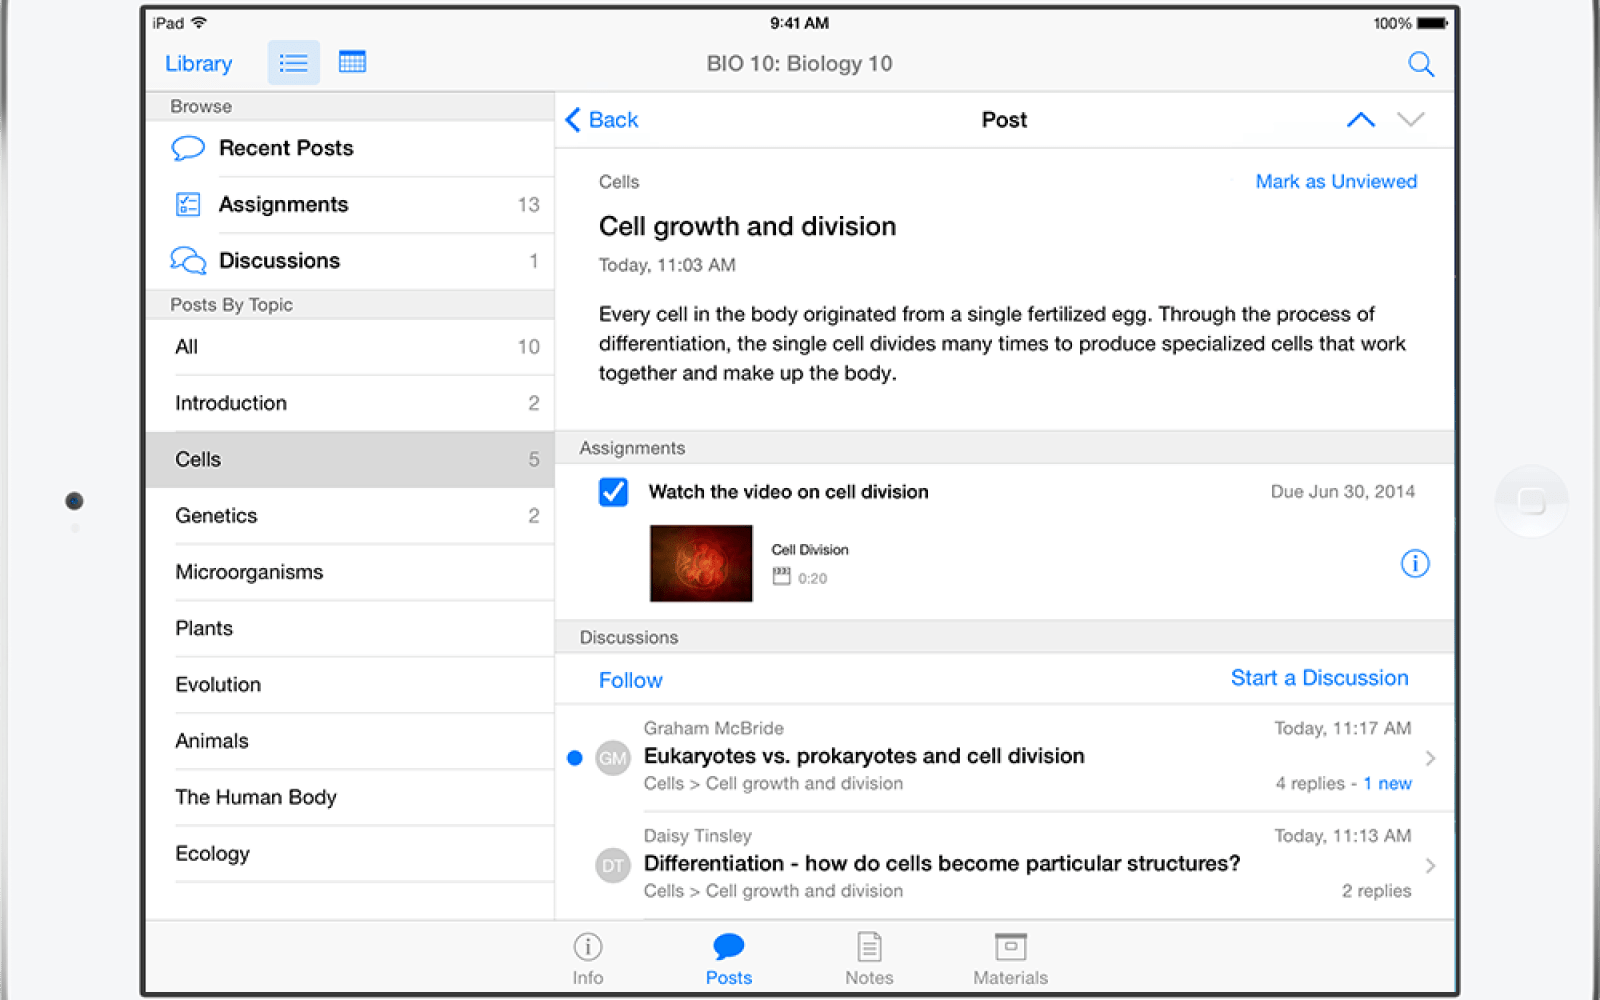 Apple announces iTunes U update with iPad Course Creation, Student Discussions & more